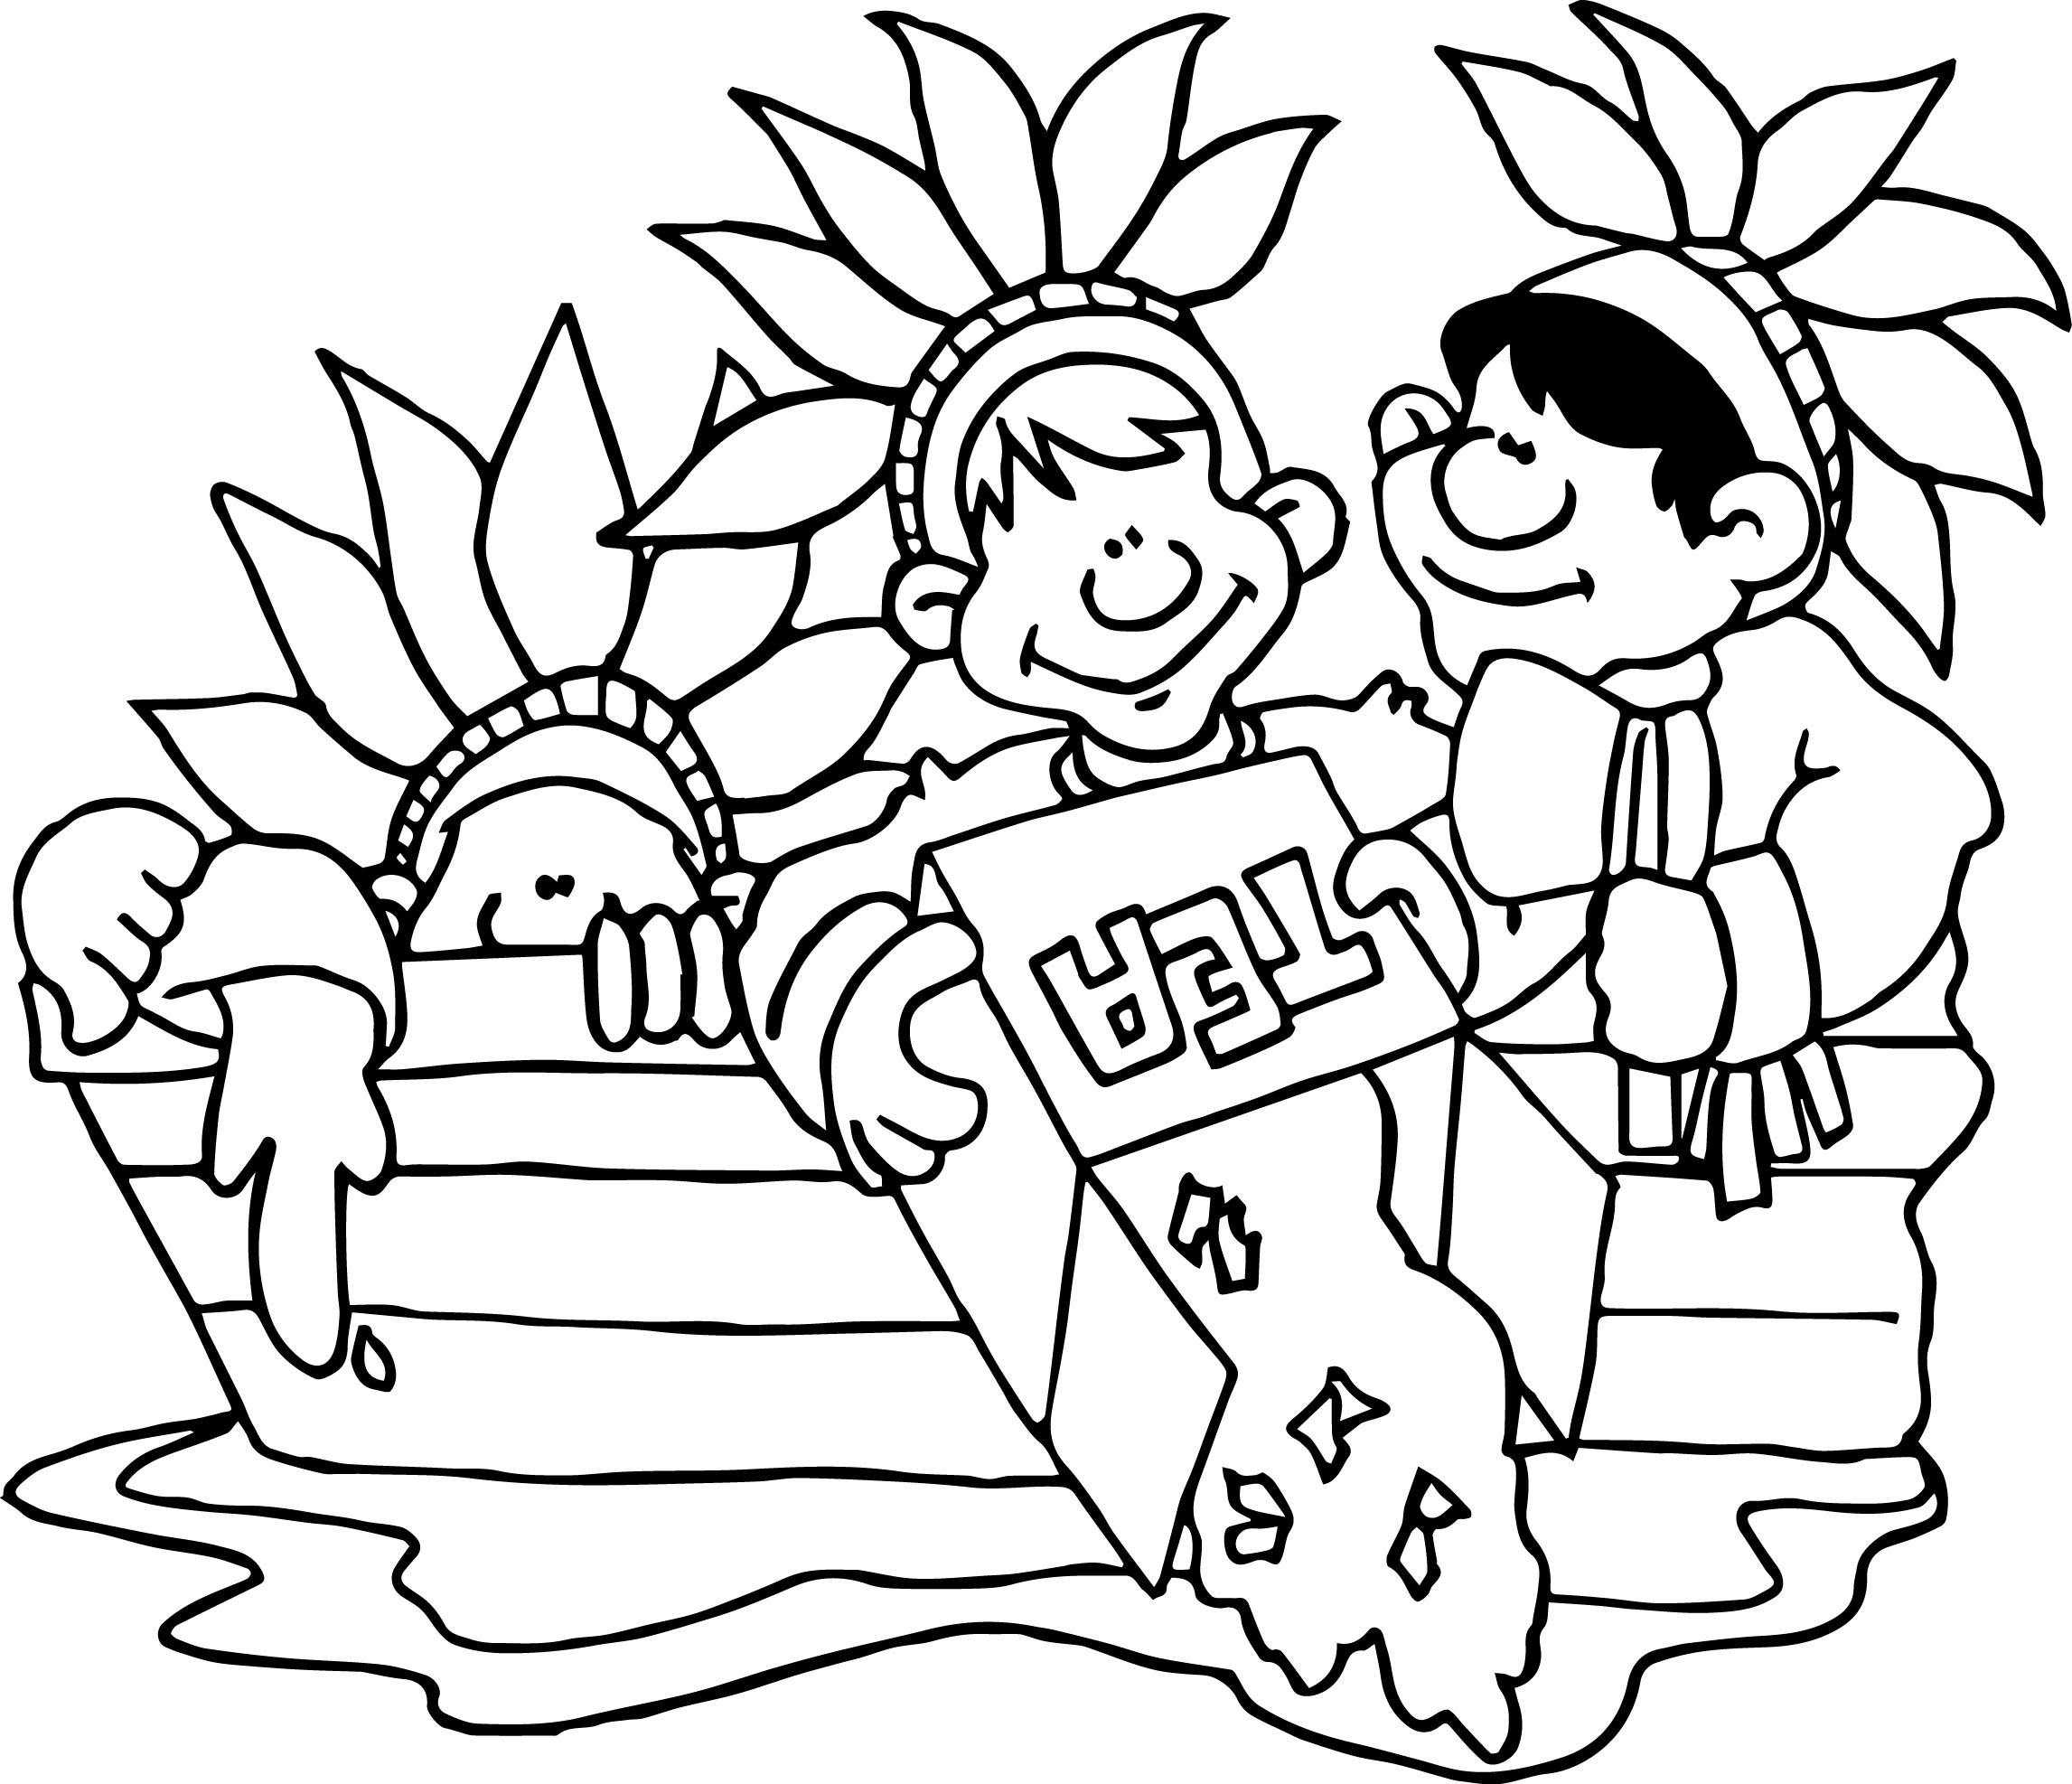 boston tea party coloring page free coloring page boston tea party coloring home tea party boston page coloring